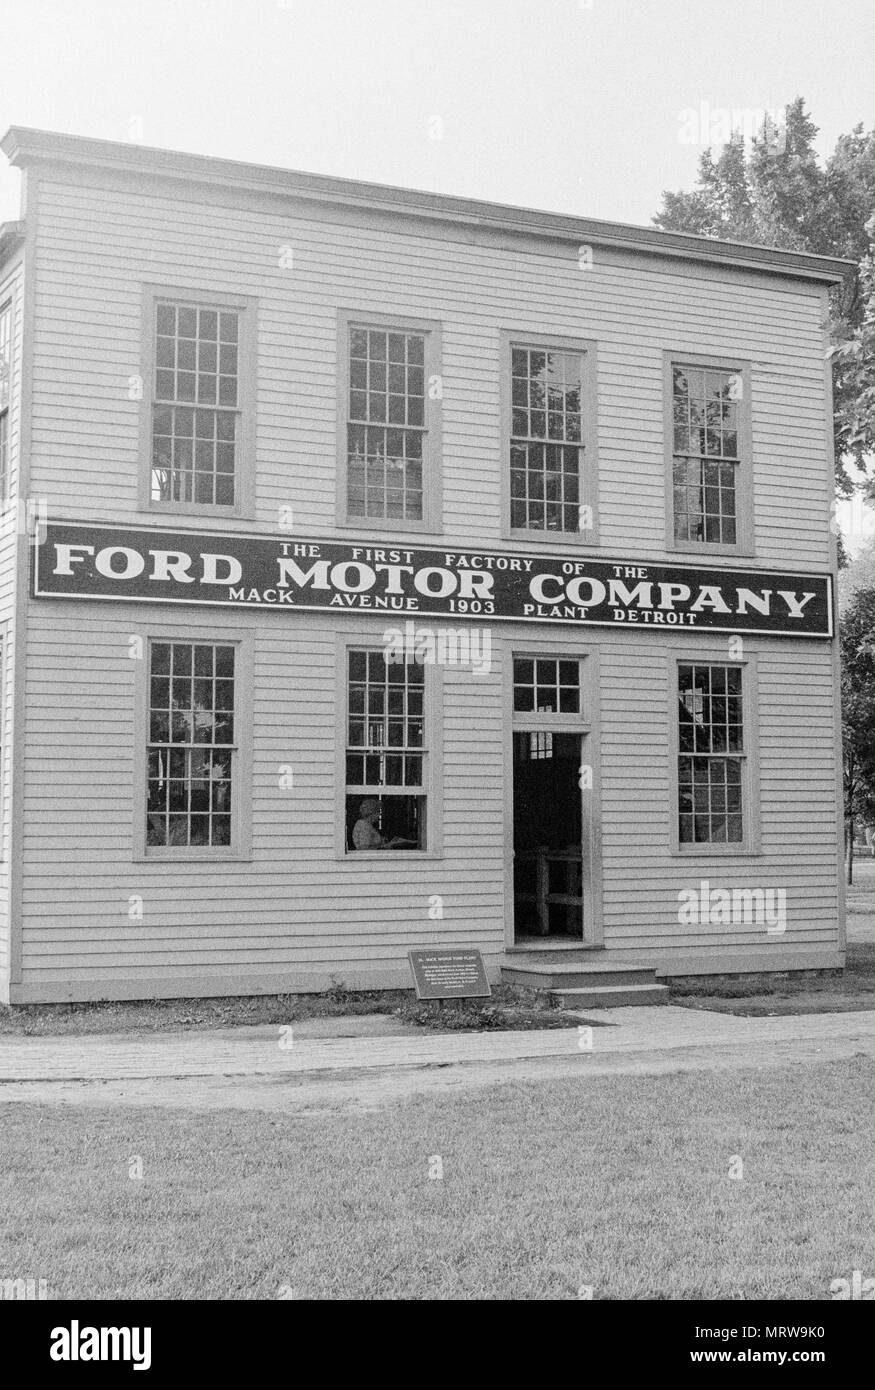 A replica of the original Ford Motor Company Mack Avenue Plant, one-fourth the size of the original,  built in 1945 at Greenfield Village, an open-air museum in Dearborn, Michigan. Photographed in 1980. - Stock Image